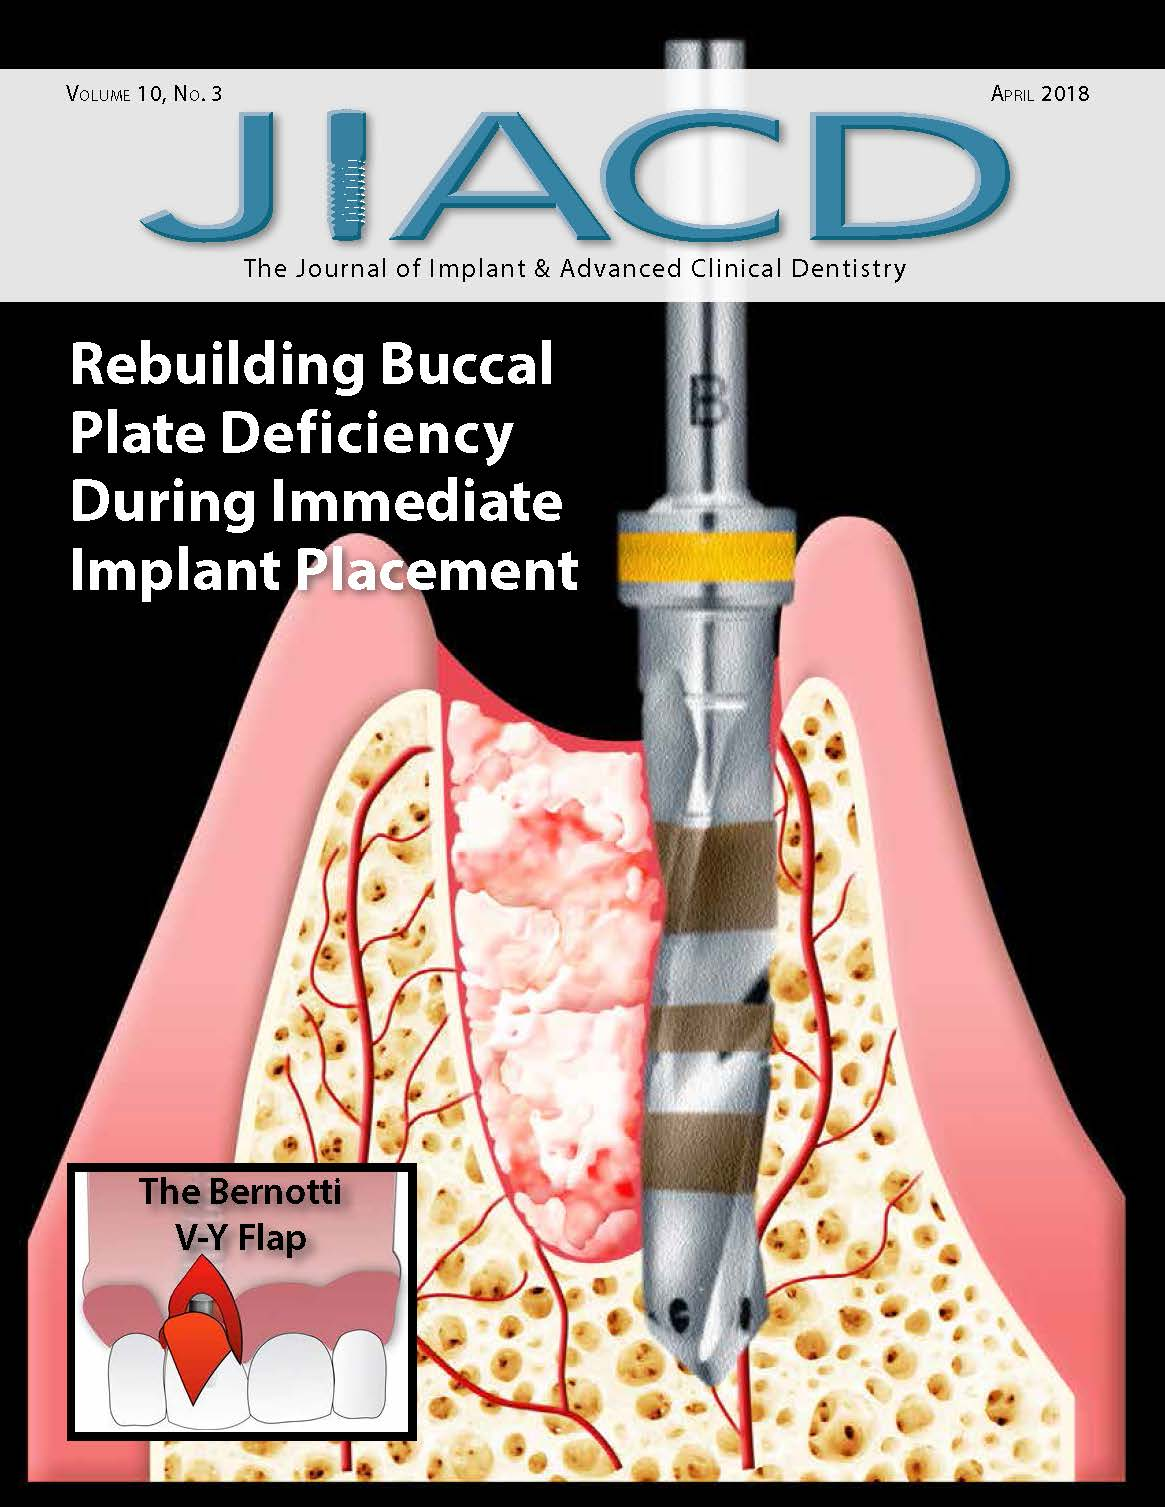 Rebuilding Buccal Plate Deficiency During Immediate Implant Placement